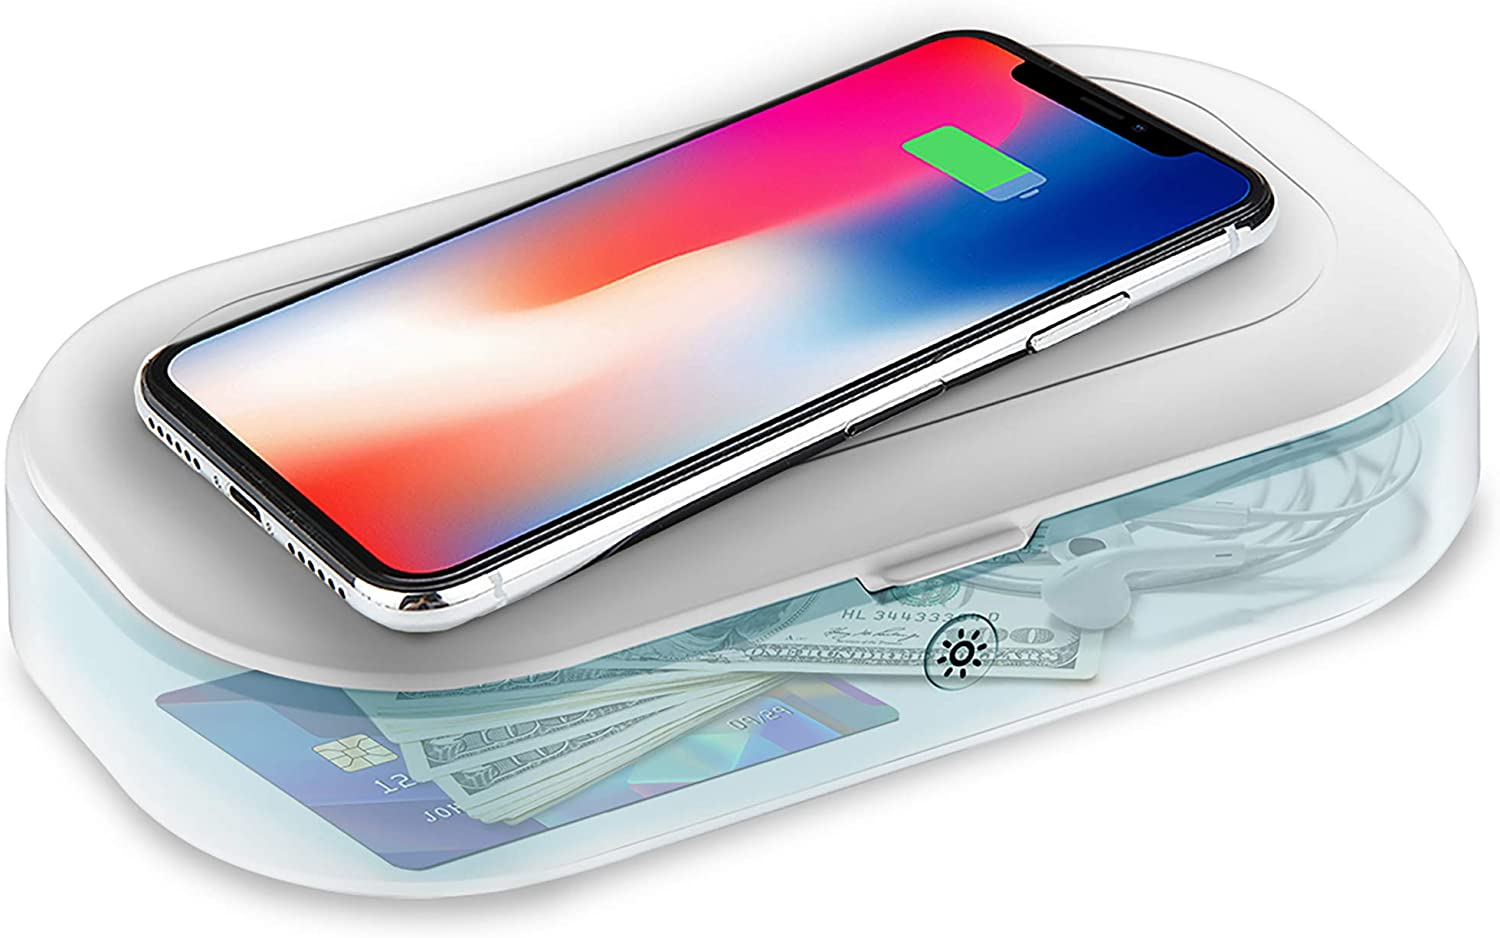 Homecode Cleaner & Wireless Charger | 3 in 1 Sterilizing Box for Cell Phone, Jewelry, Watches, Glasses | Portable U V С Light Smartphone Sanitizer | USA & EA Certificated